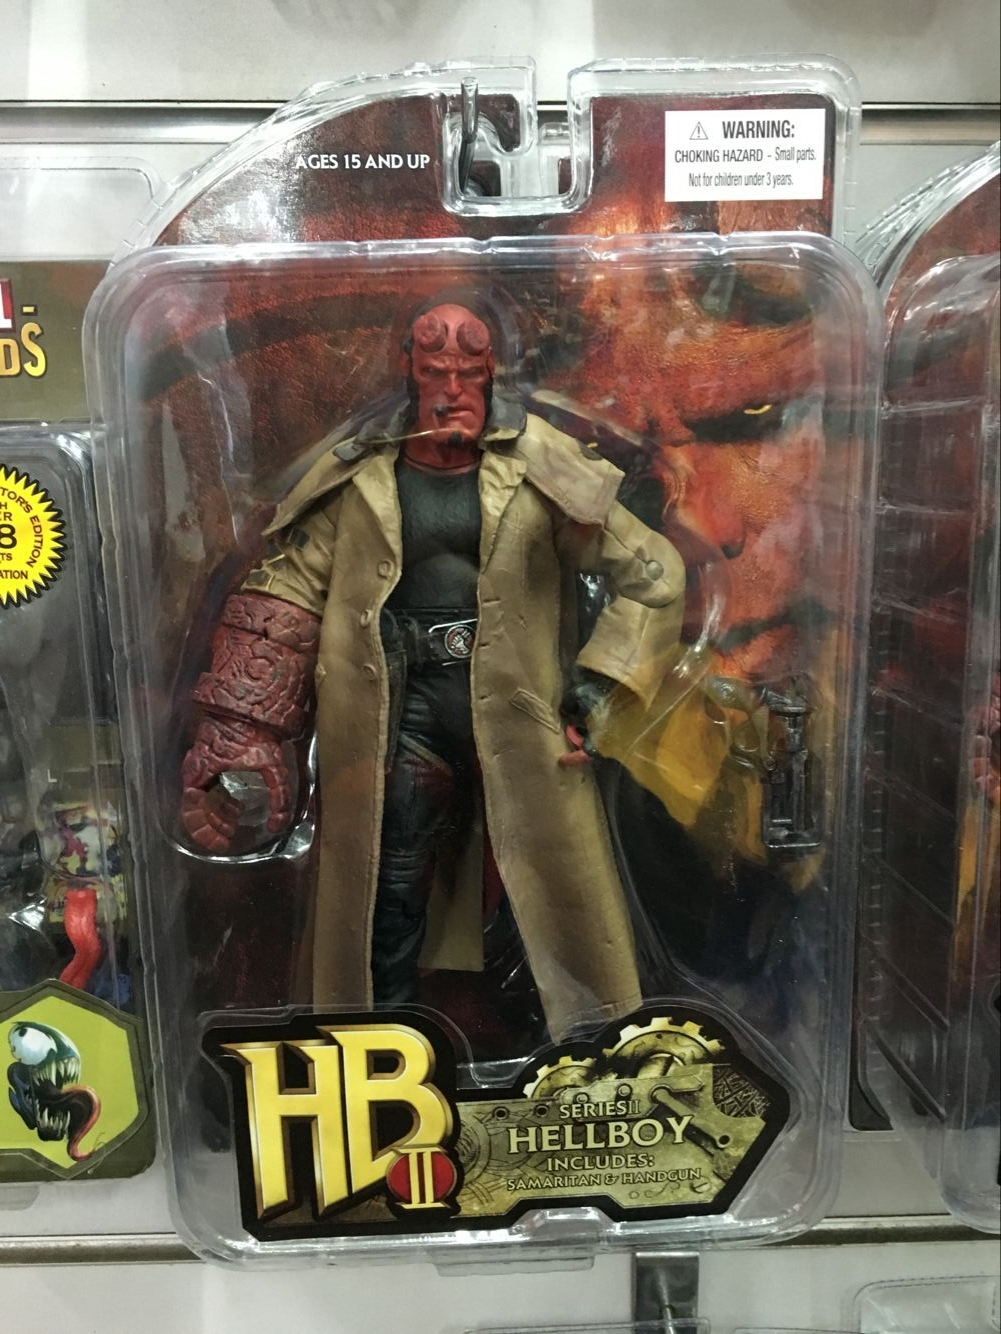 MEZCO Hellboy 2 Styles PVC Action Figure Collectible Model Toy 7 18cm KT3641 brix 0 90